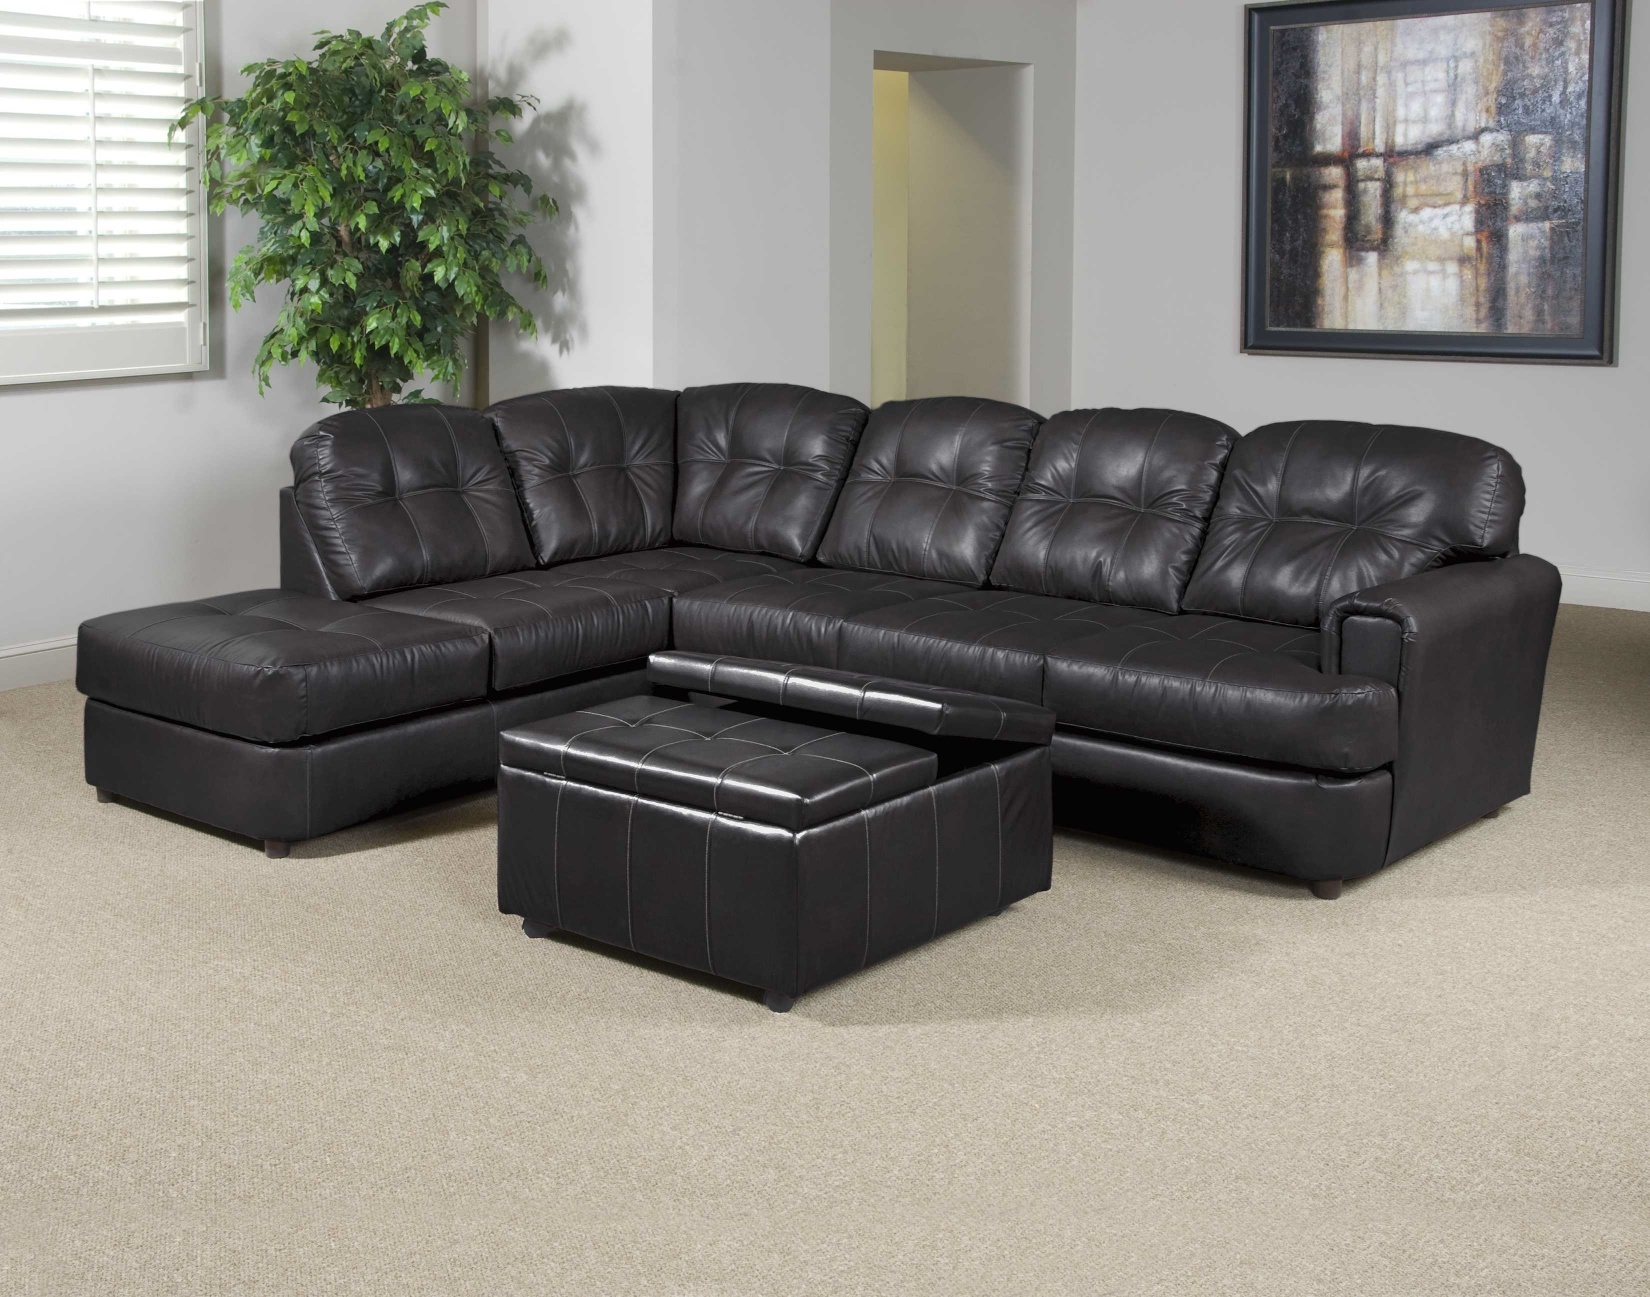 montreal sectional sofa in slate dark brown leather furniture clearance center sectionals